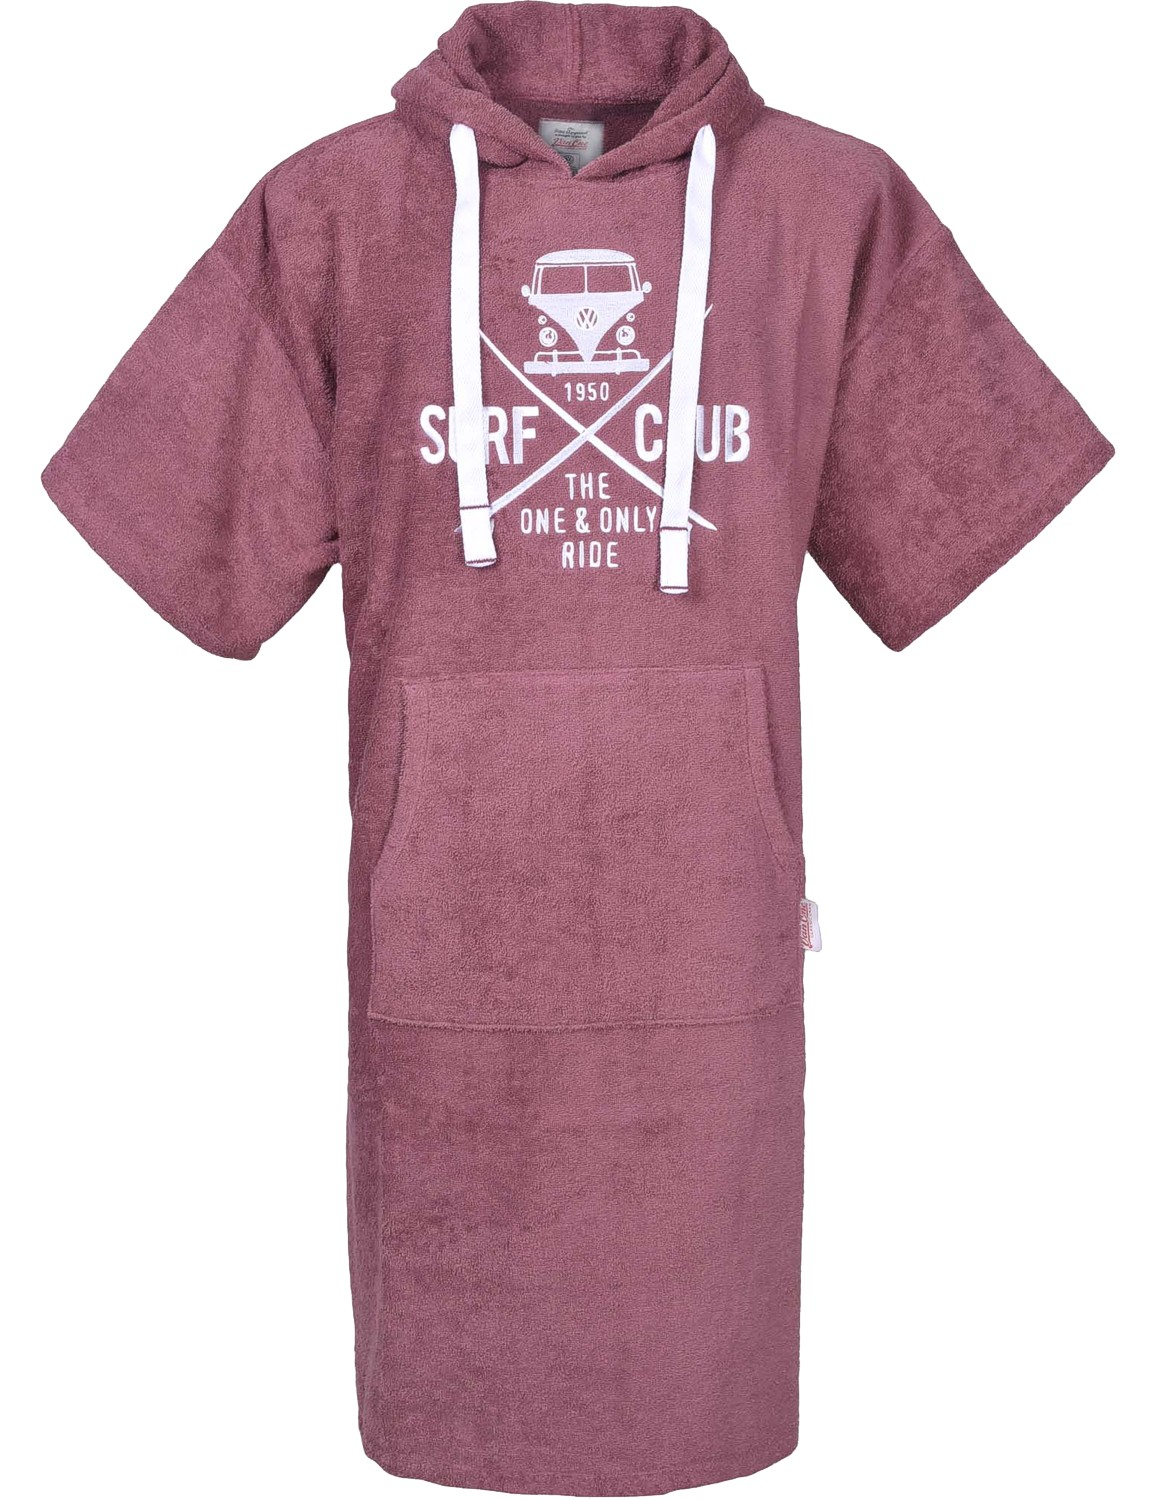 Poncho Strandponcho Bademantel VW Bulli »SURF CLUB« Berry Bordeaux Weiß